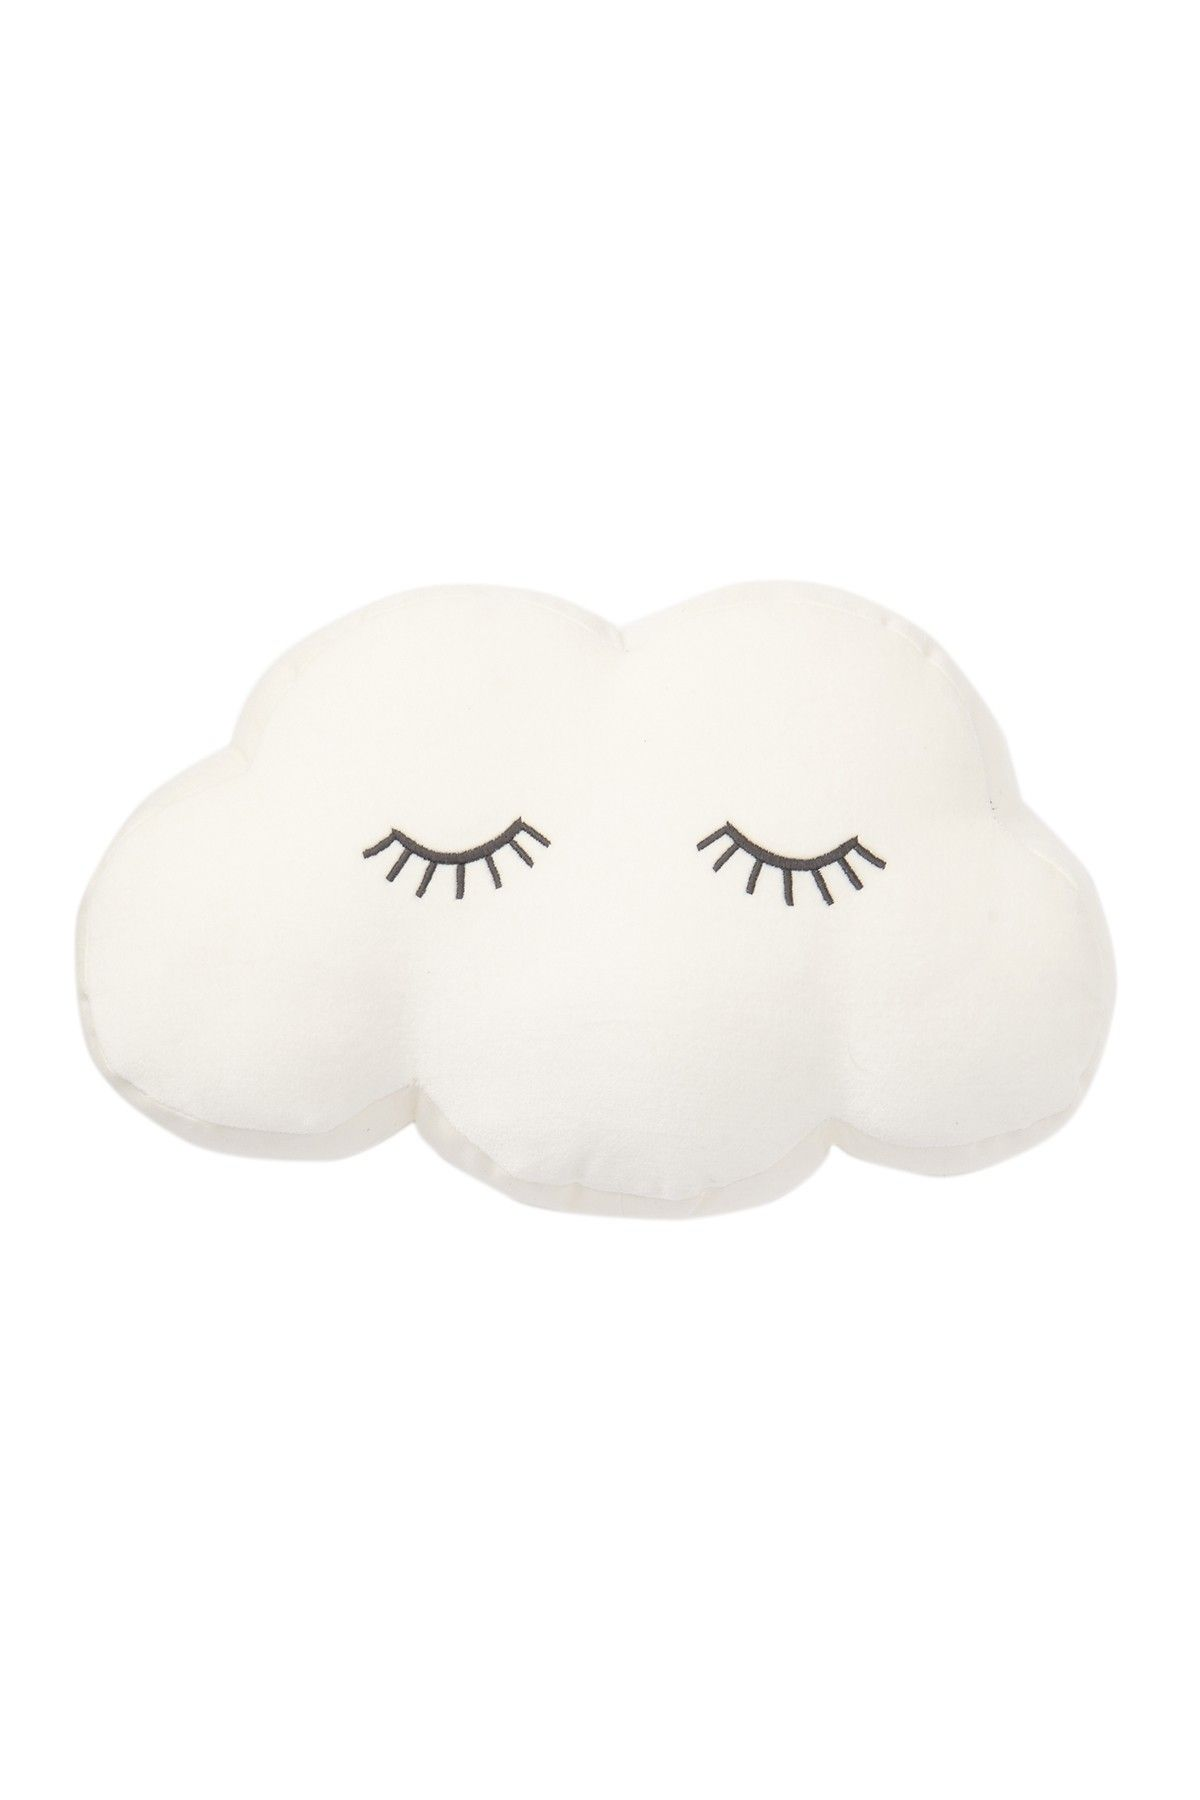 Cloud Shaped Pillow - 15.5 x 9 #nordstromrack